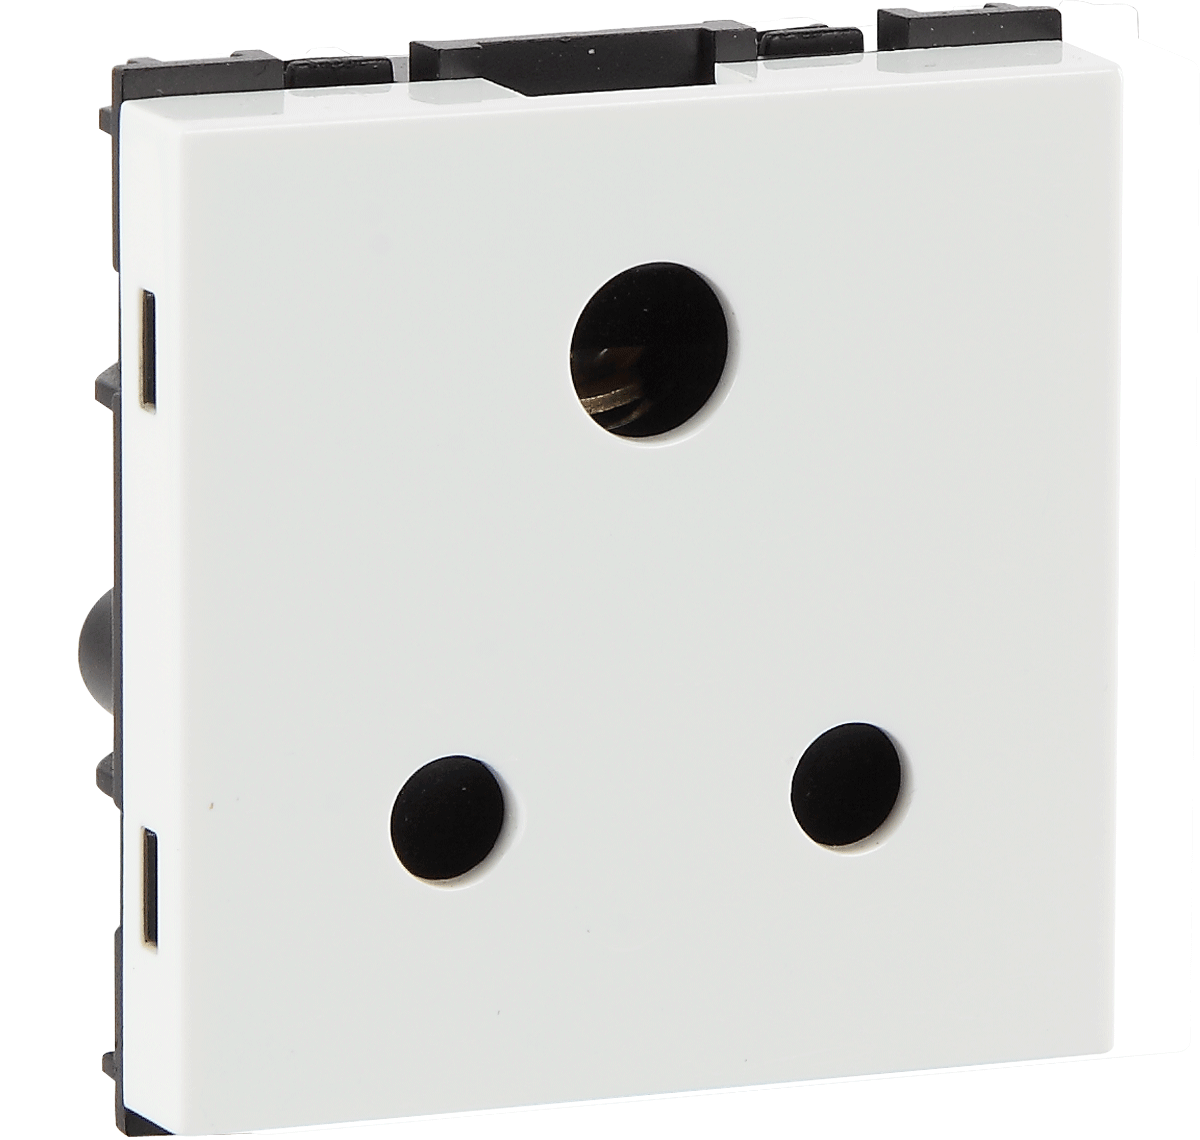 6 A 5 Pin Shuttered Socket